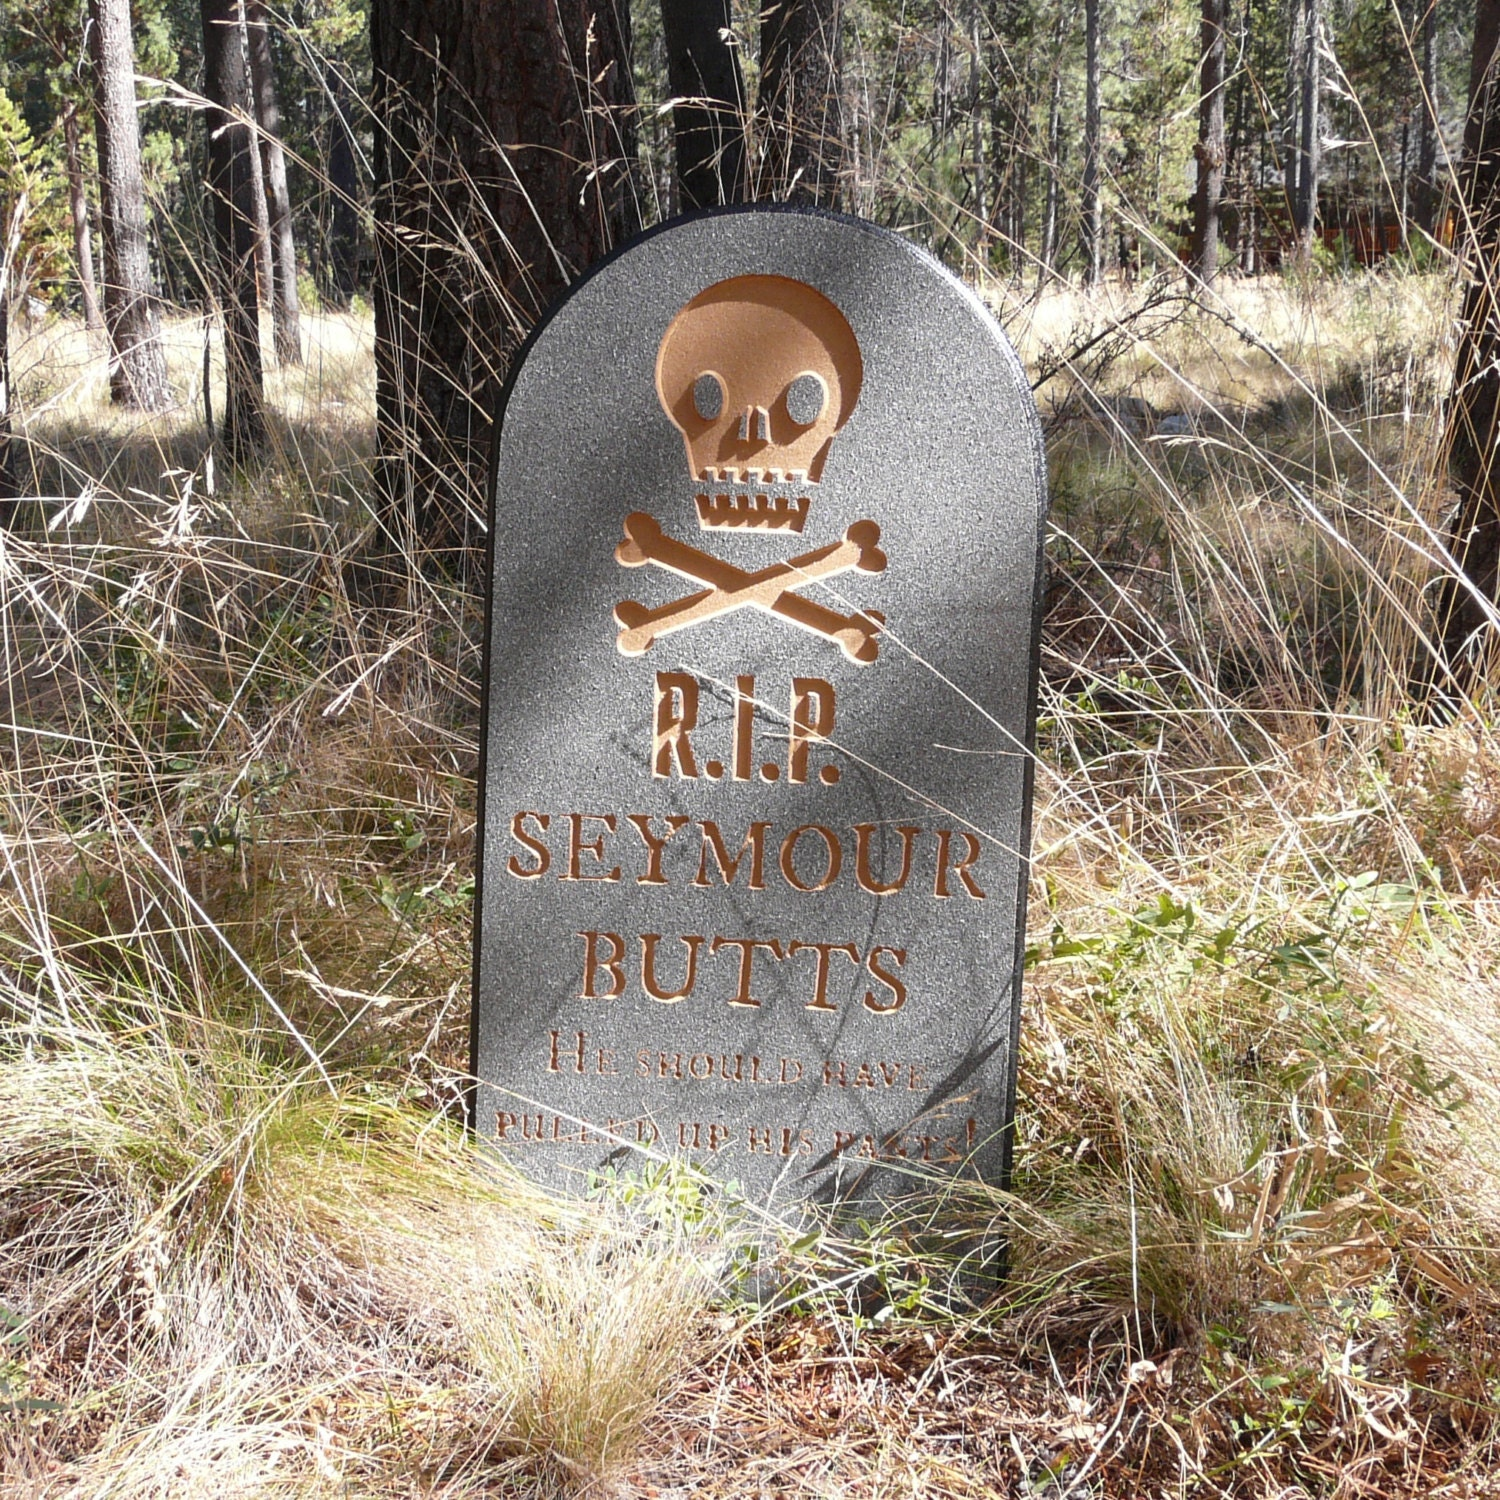 Halloween tombstone seymour butts lawn yard ornament sign - Deco exterieur halloween ...